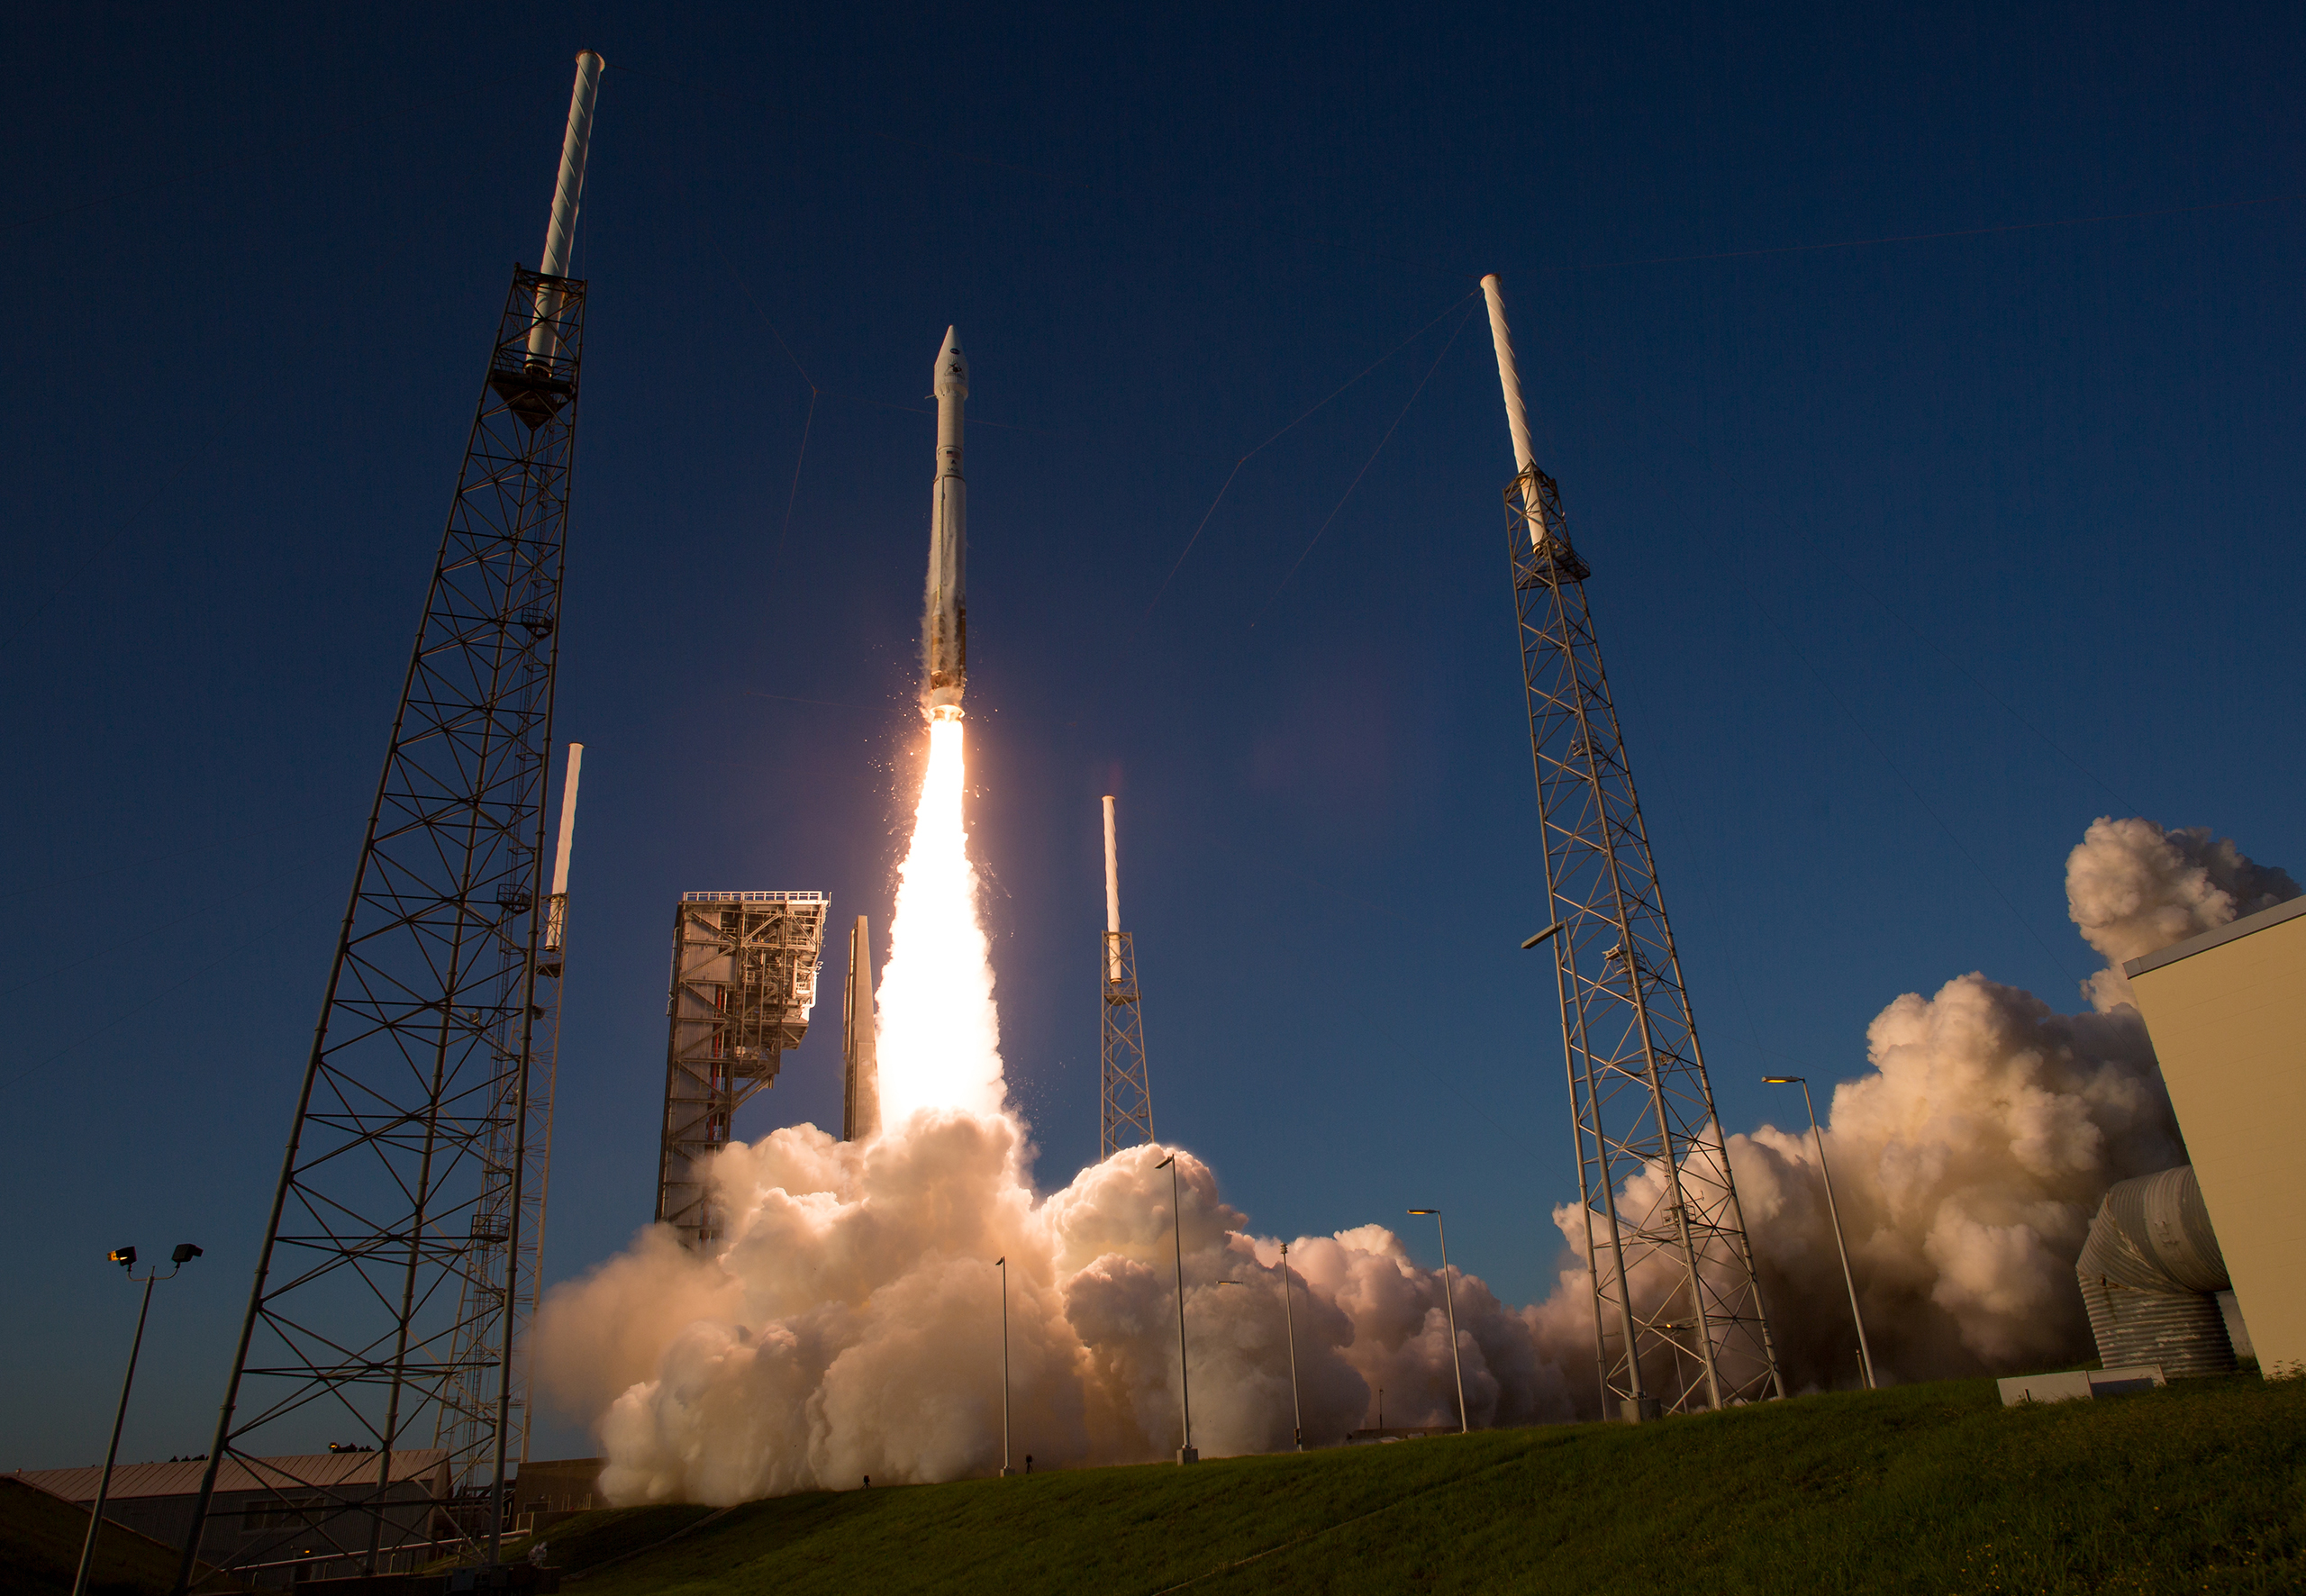 The United Launch Alliance Atlas V rocket carrying NASA's Origins, Spectral Interpretation, Resource Identification, Security-Regolith Explorer (OSIRIS-REx) spacecraft lifts off on from Space Launch Complex 41 at Cape Canaveral Air Force Station in Fla. on Sept. 8, 2016.